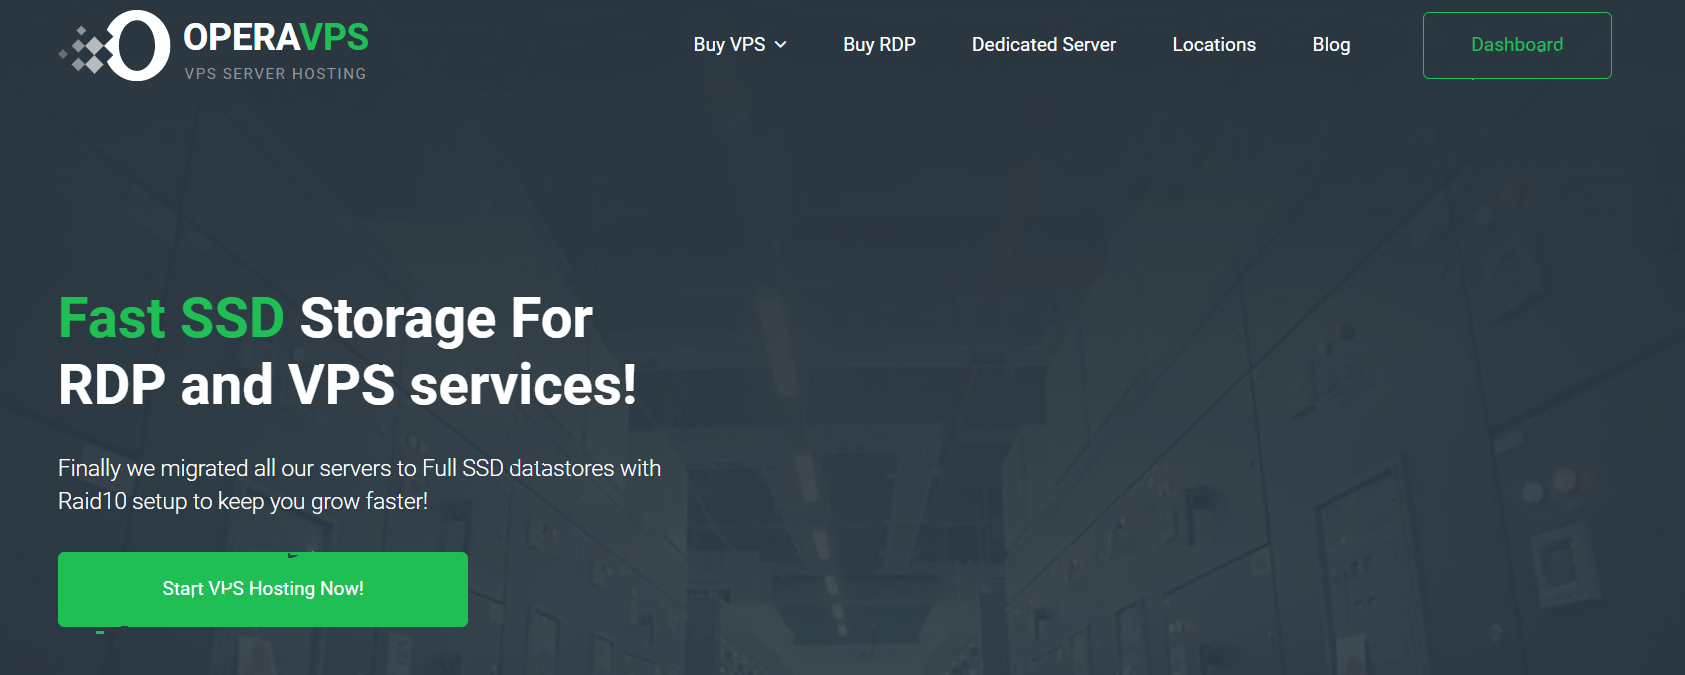 Opera VPS Review